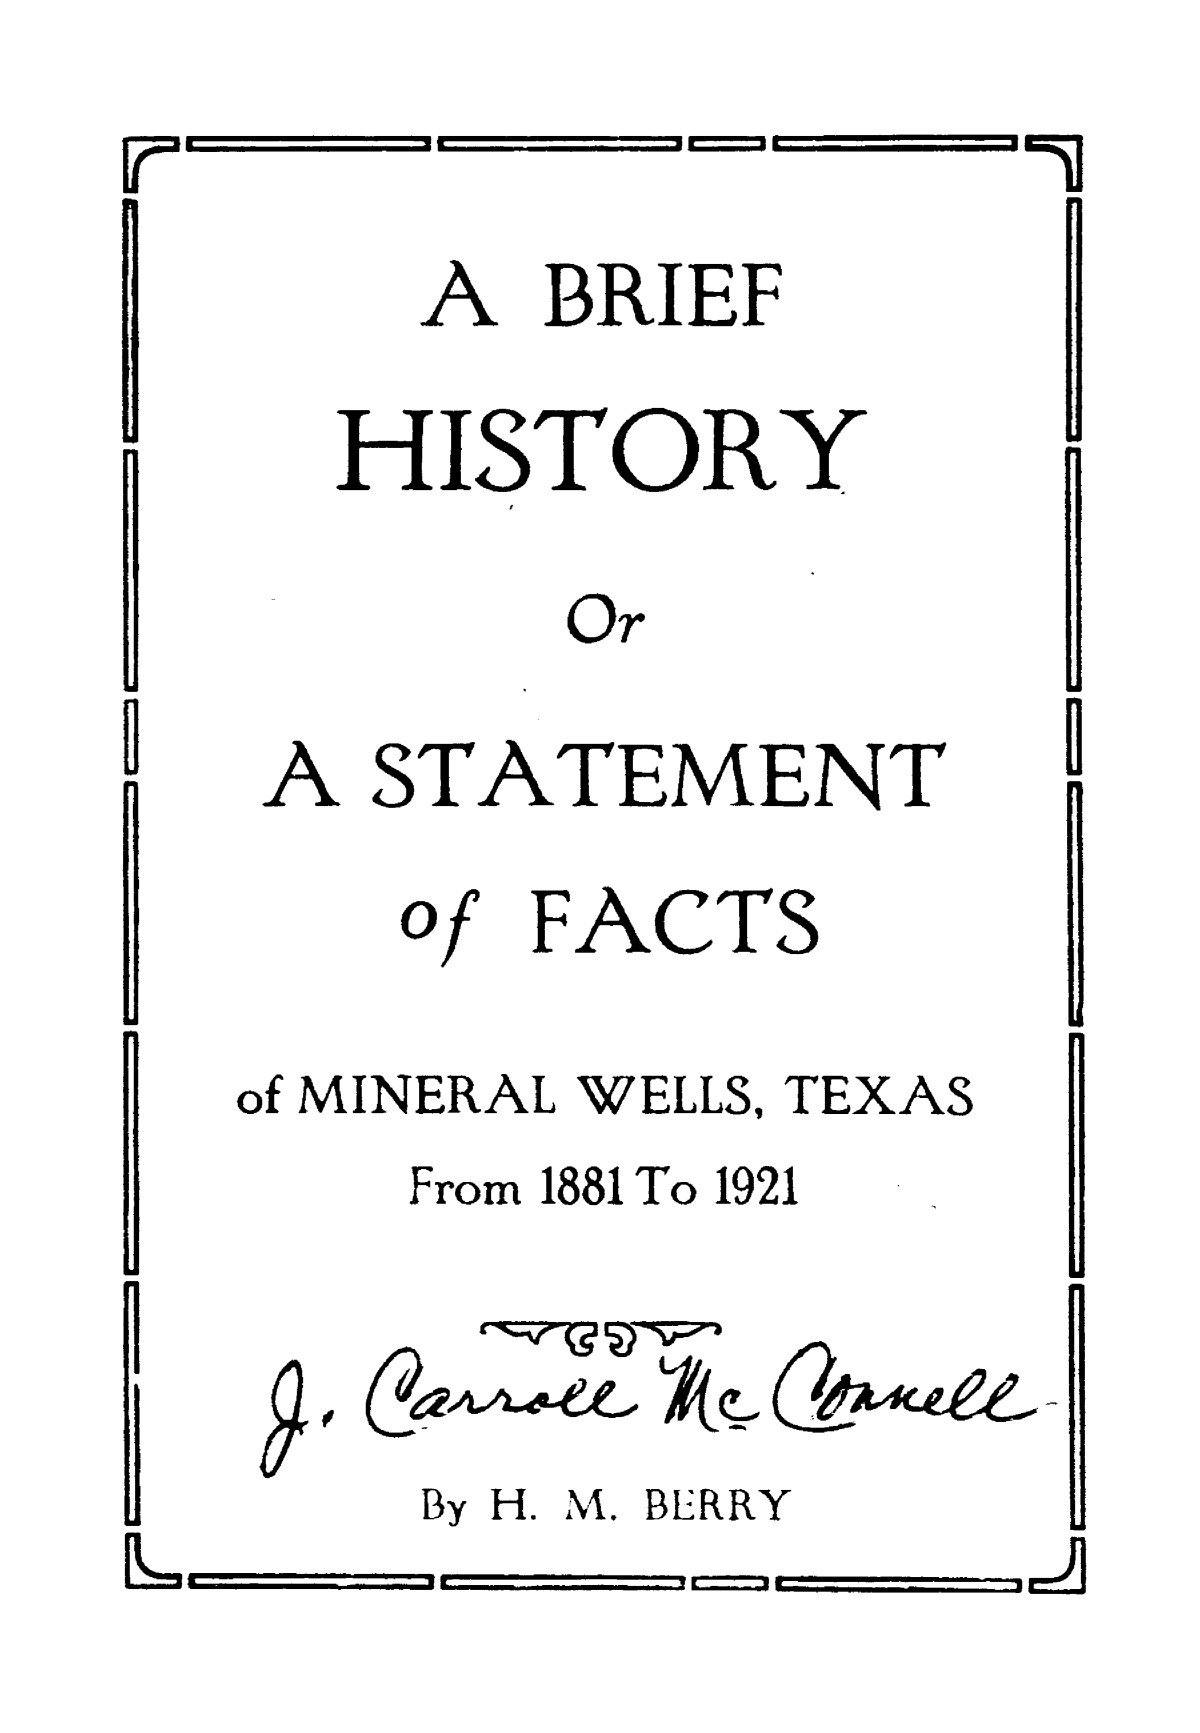 A Brief History or a Statement of Facts of Mineral Wells, Texas                                                                                                      [Sequence #]: 1 of 22